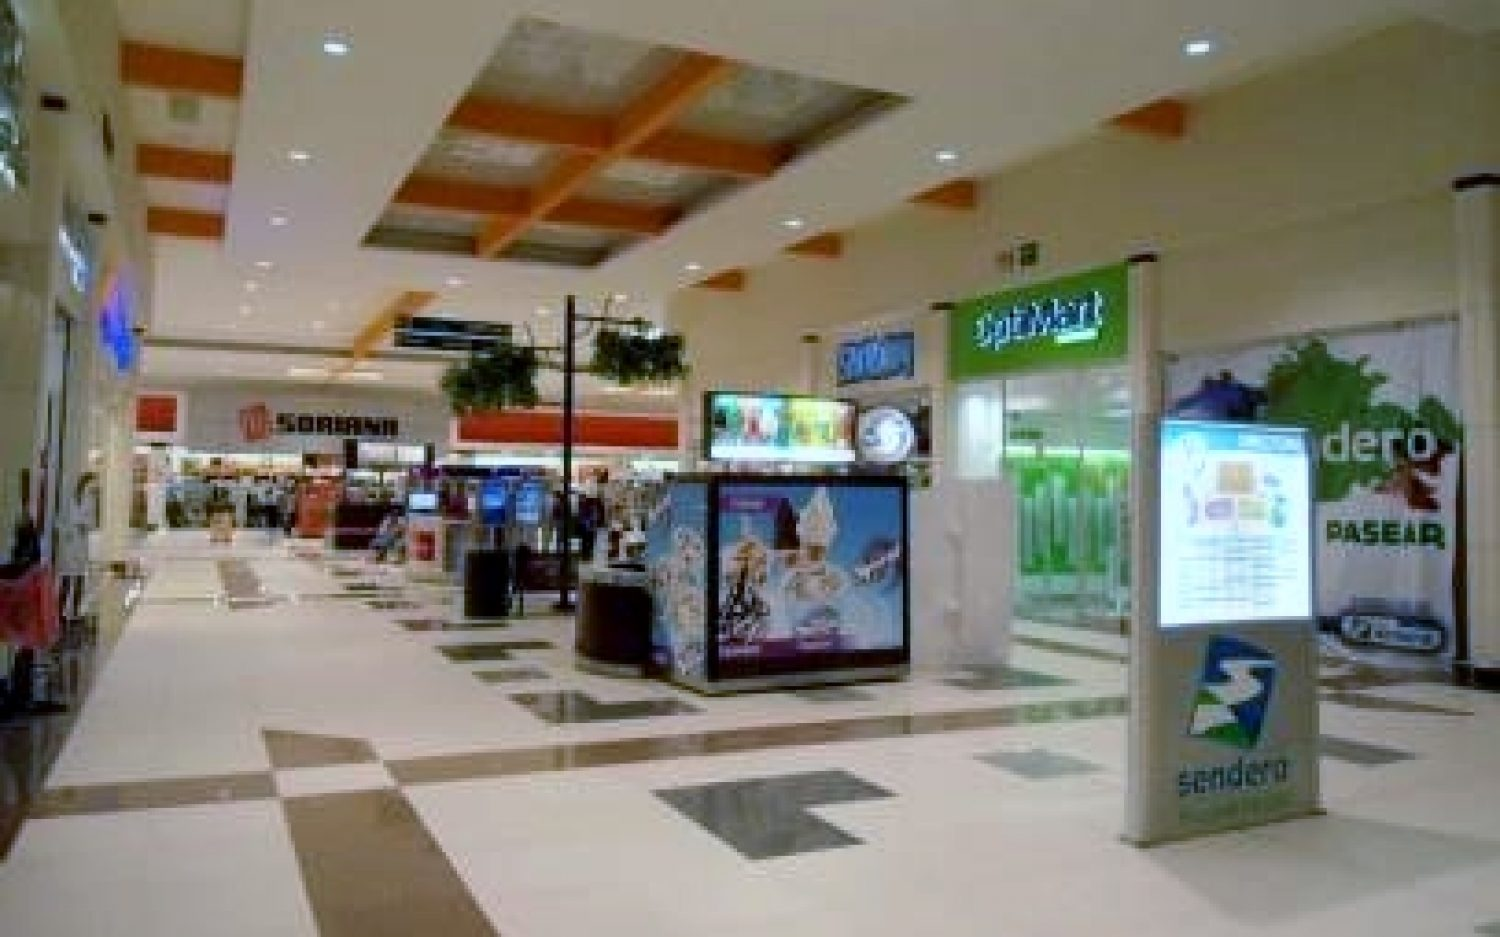 Co-Plaza Sendero Villahermosa (35)